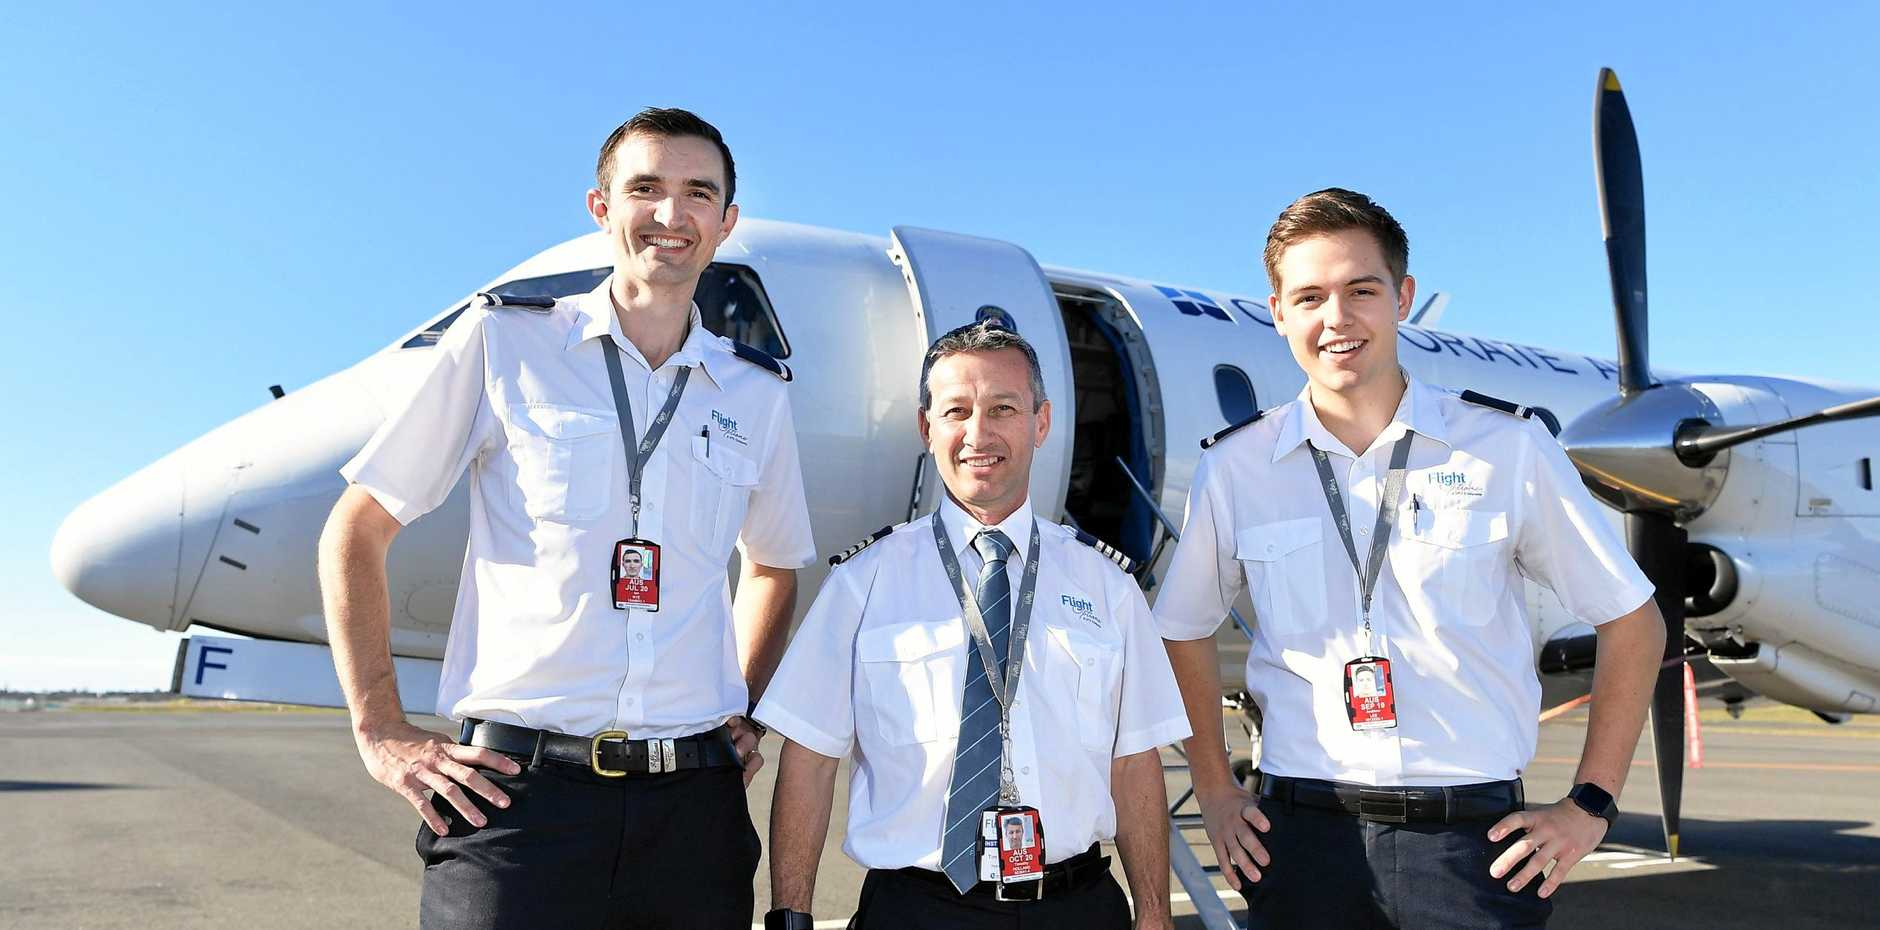 The first two students at the Sunshine Coast academy, Ian Nye and Adrew Lee, are graduating from the Airline Cadet Program at Flight Options Pilot Academy embark on their career with Corporate Air, one of the largest 24/7 aviation service providers in Eastern and Southern Australia. Pictured with Ian and Andrew is head of operations Tim Holland. The academy has just announced plans to expand into the Gympie Aerodrome.